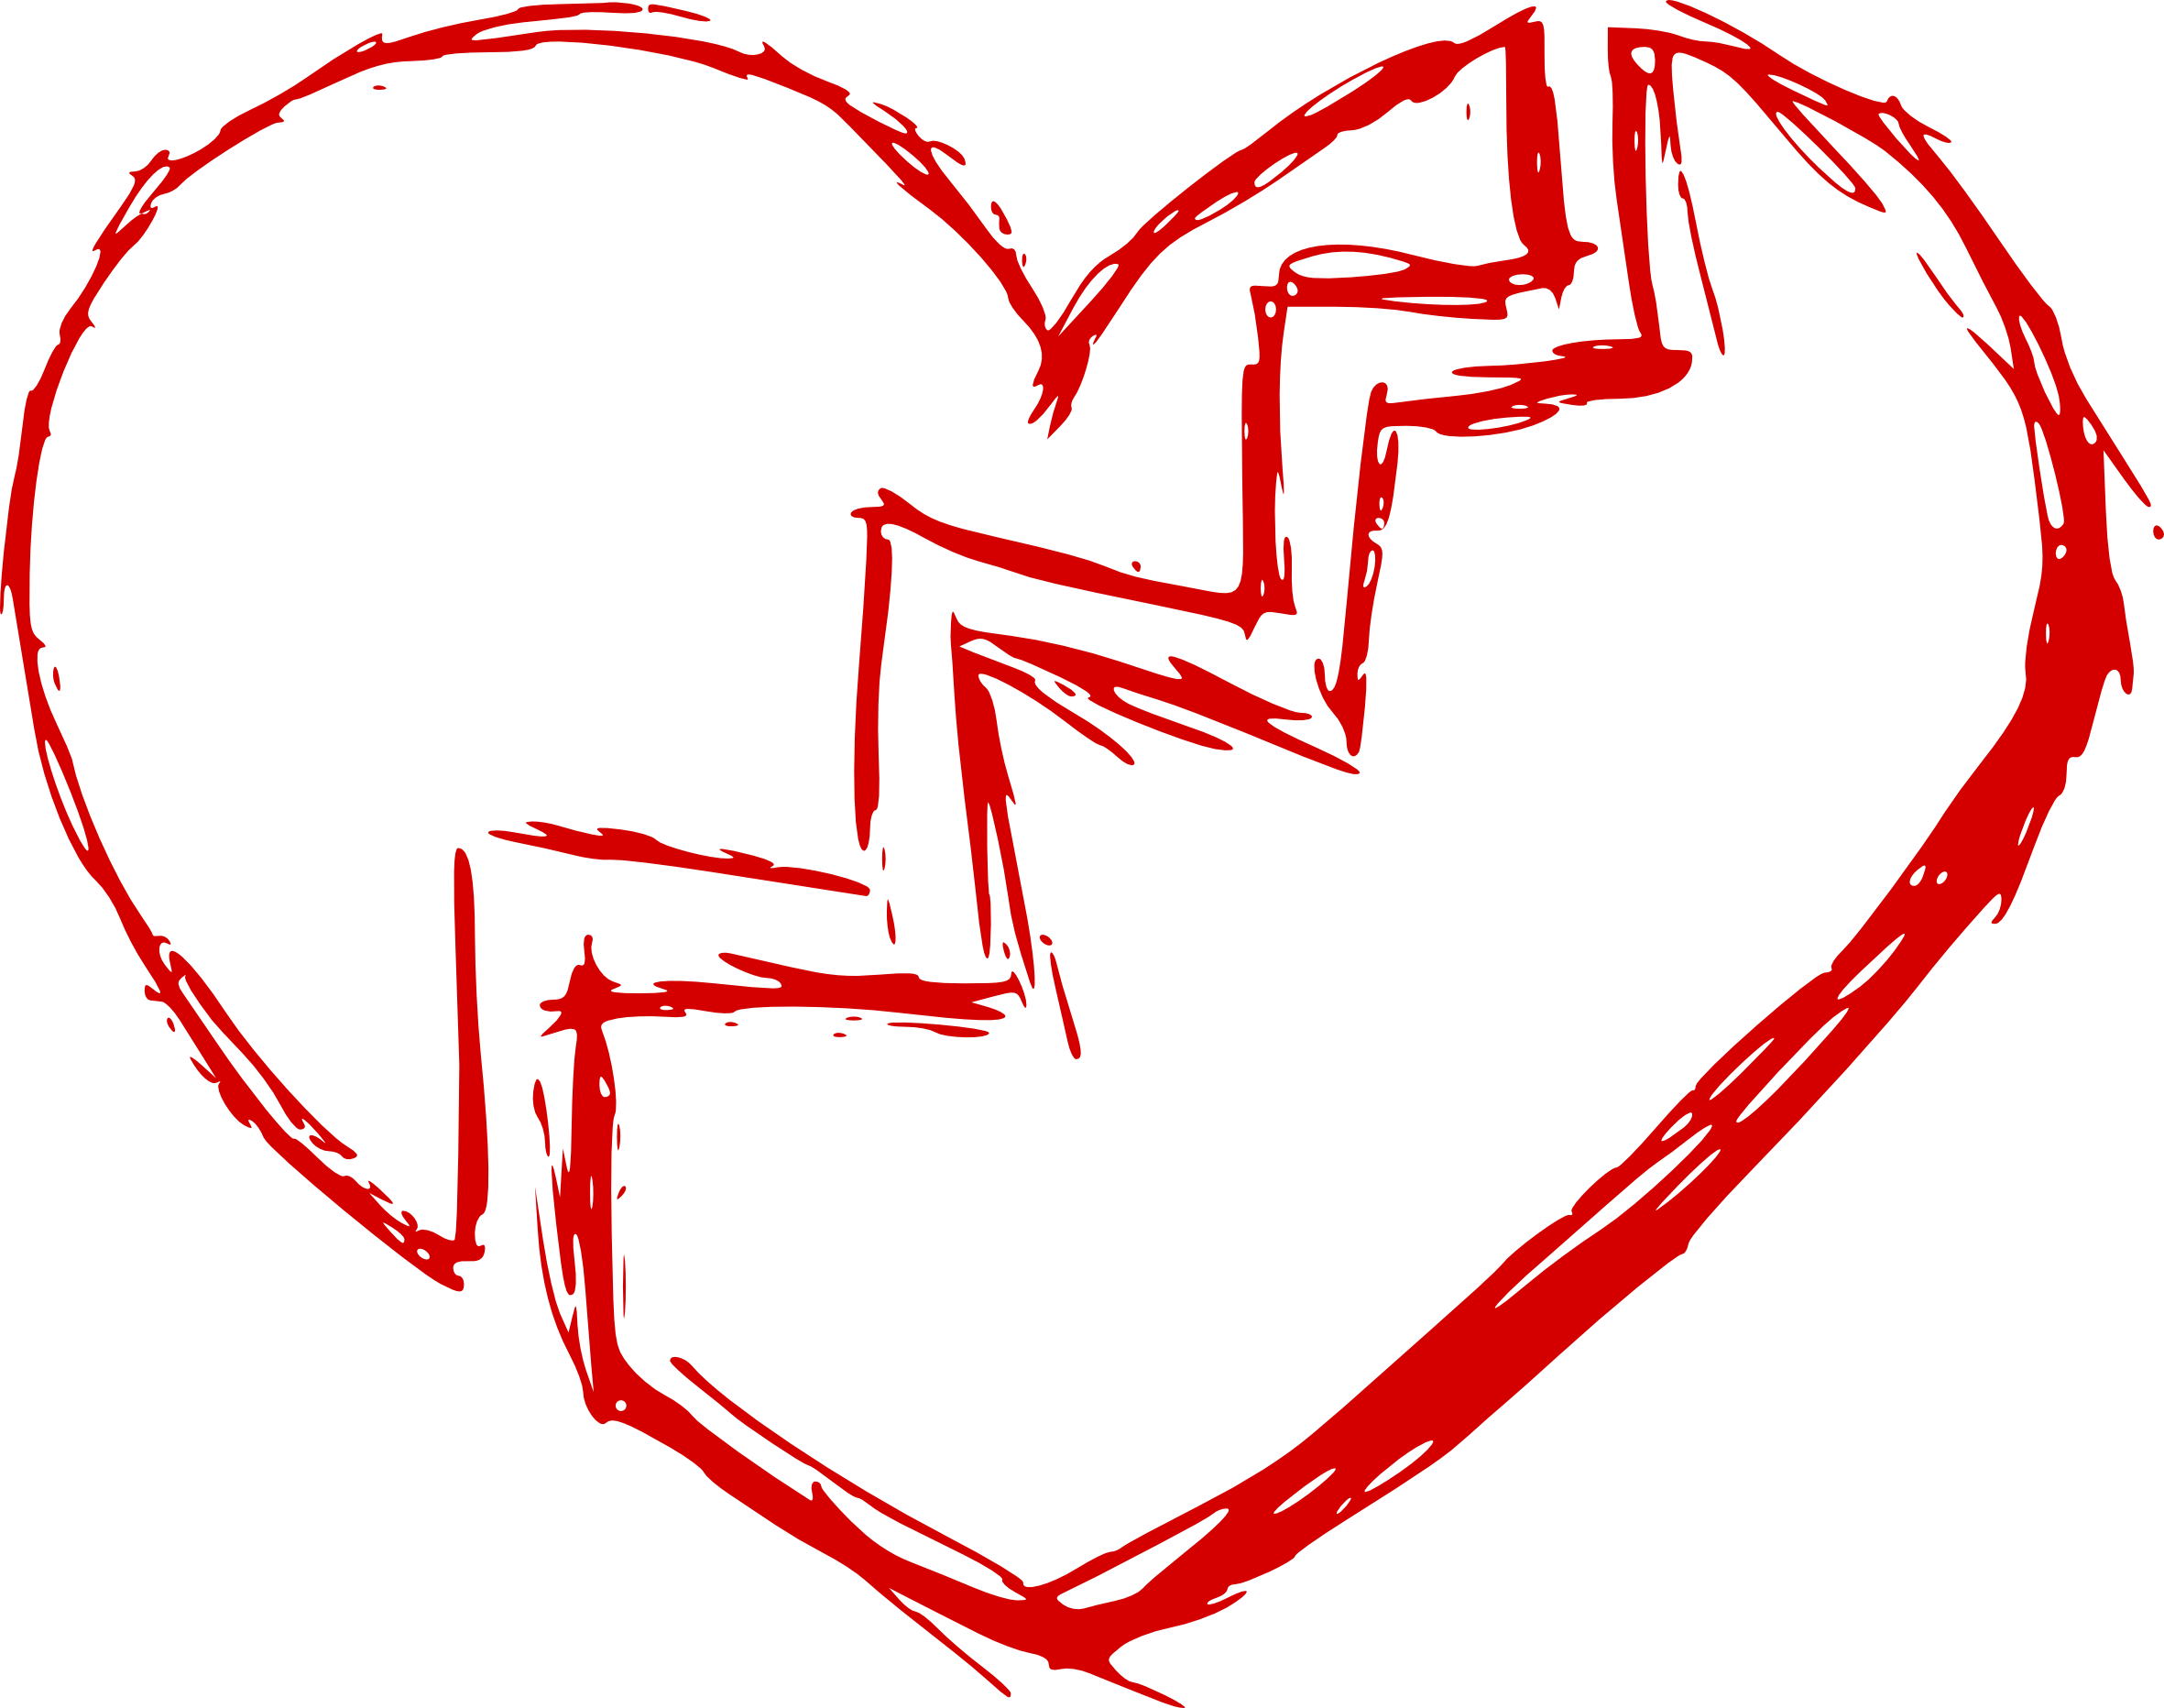 Brush stroke heart clipart image library download Broken Heart (PNG Transparent) | OnlyGFX.com image library download